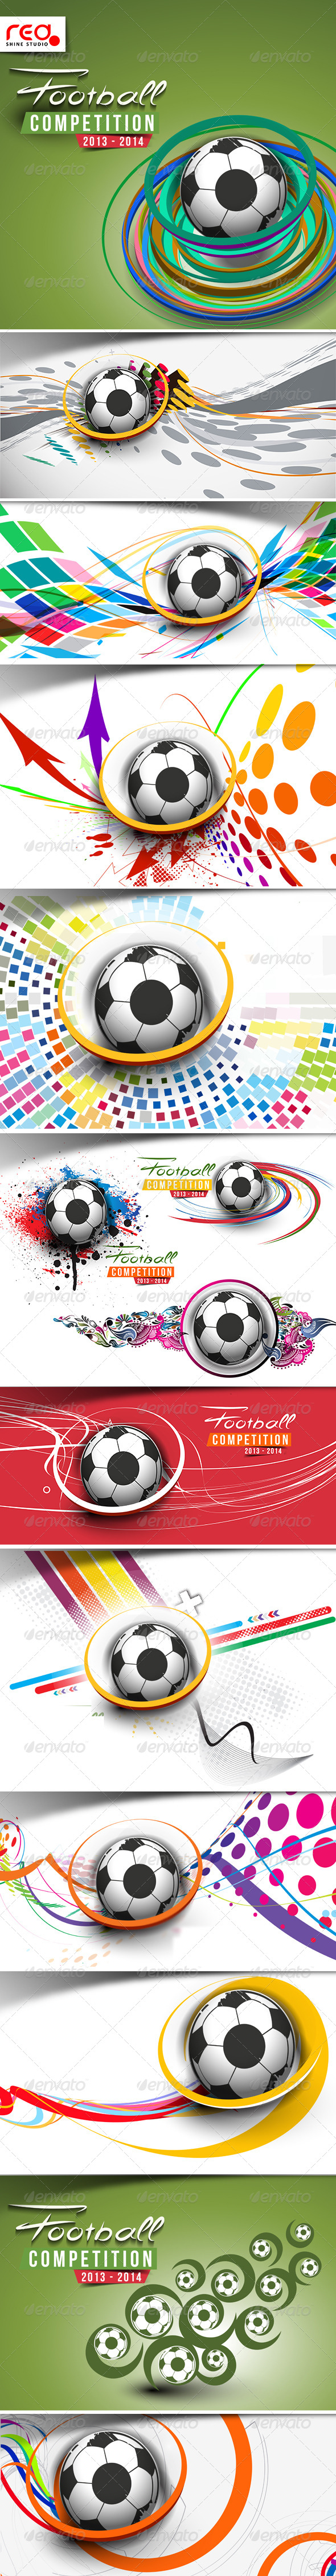 GraphicRiver Football Background 7873565